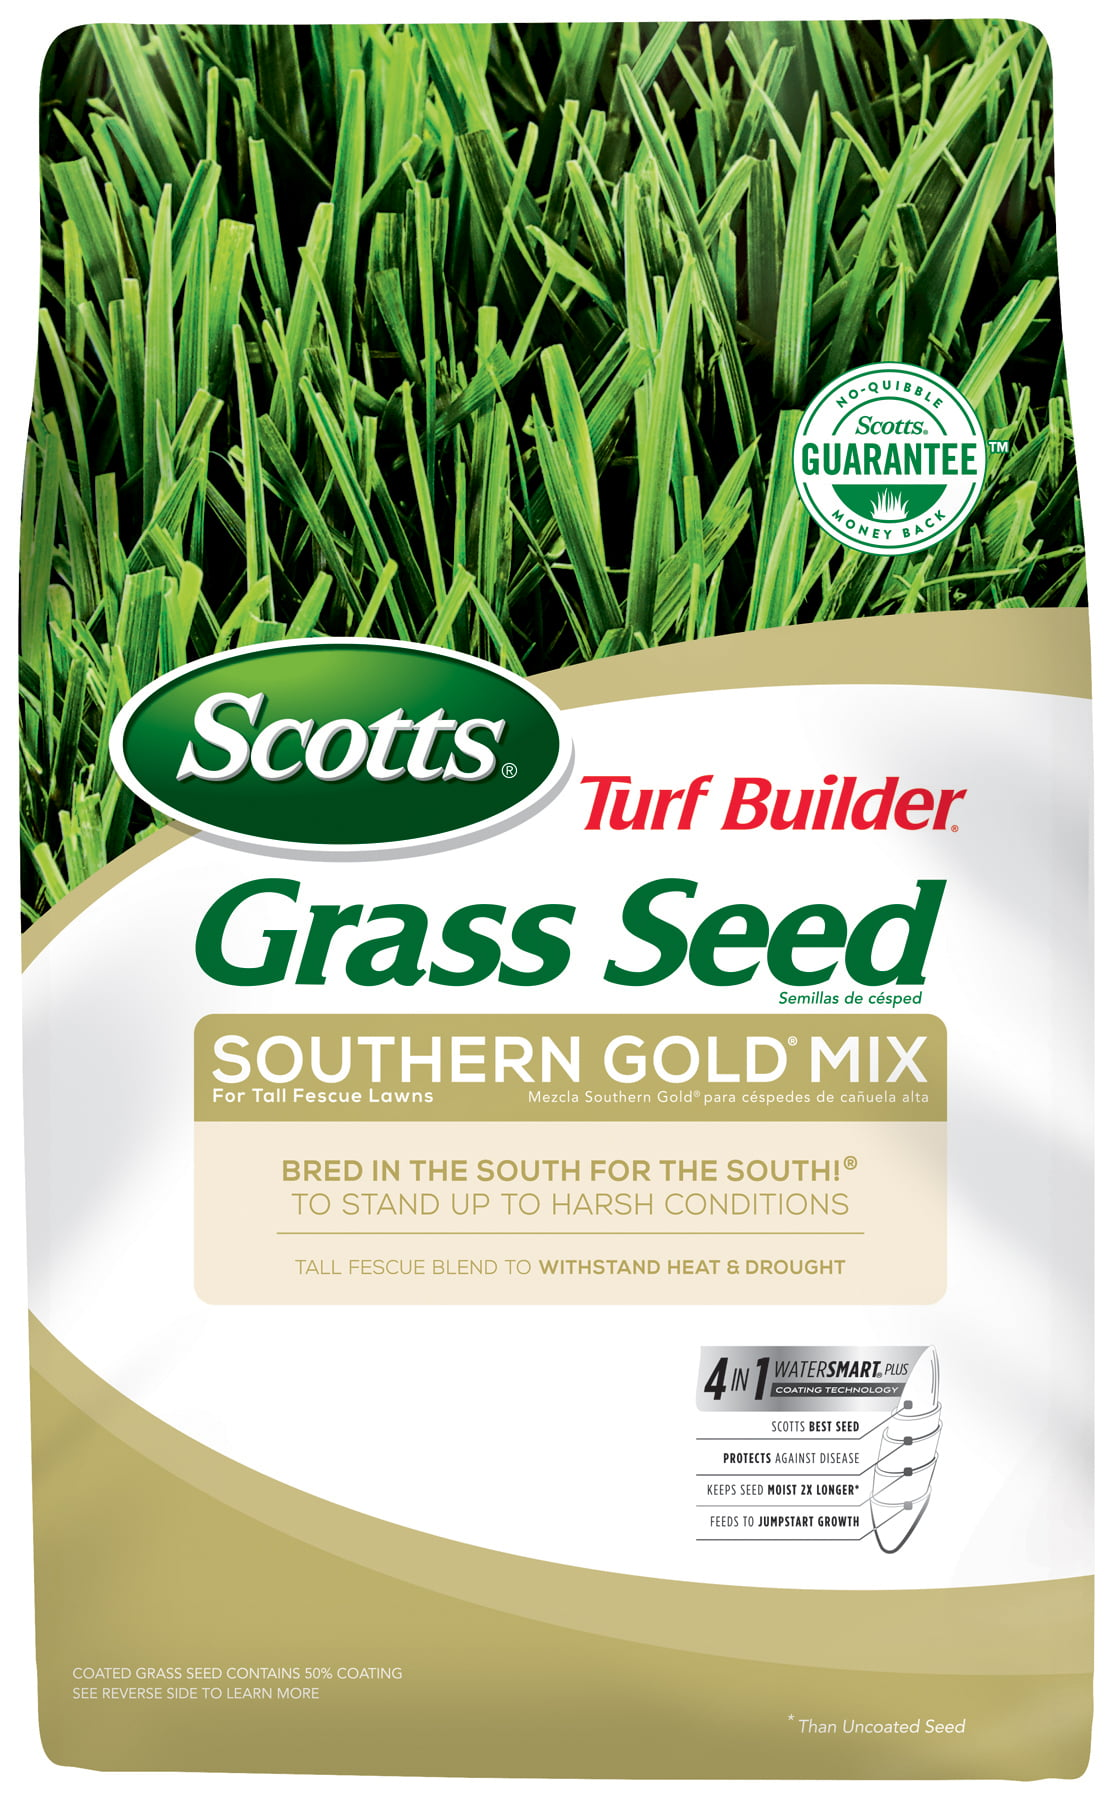 Scotts Turf Builder Southern Gold Grass Seed Mix For Tall Fescue Lawns, 40 lb